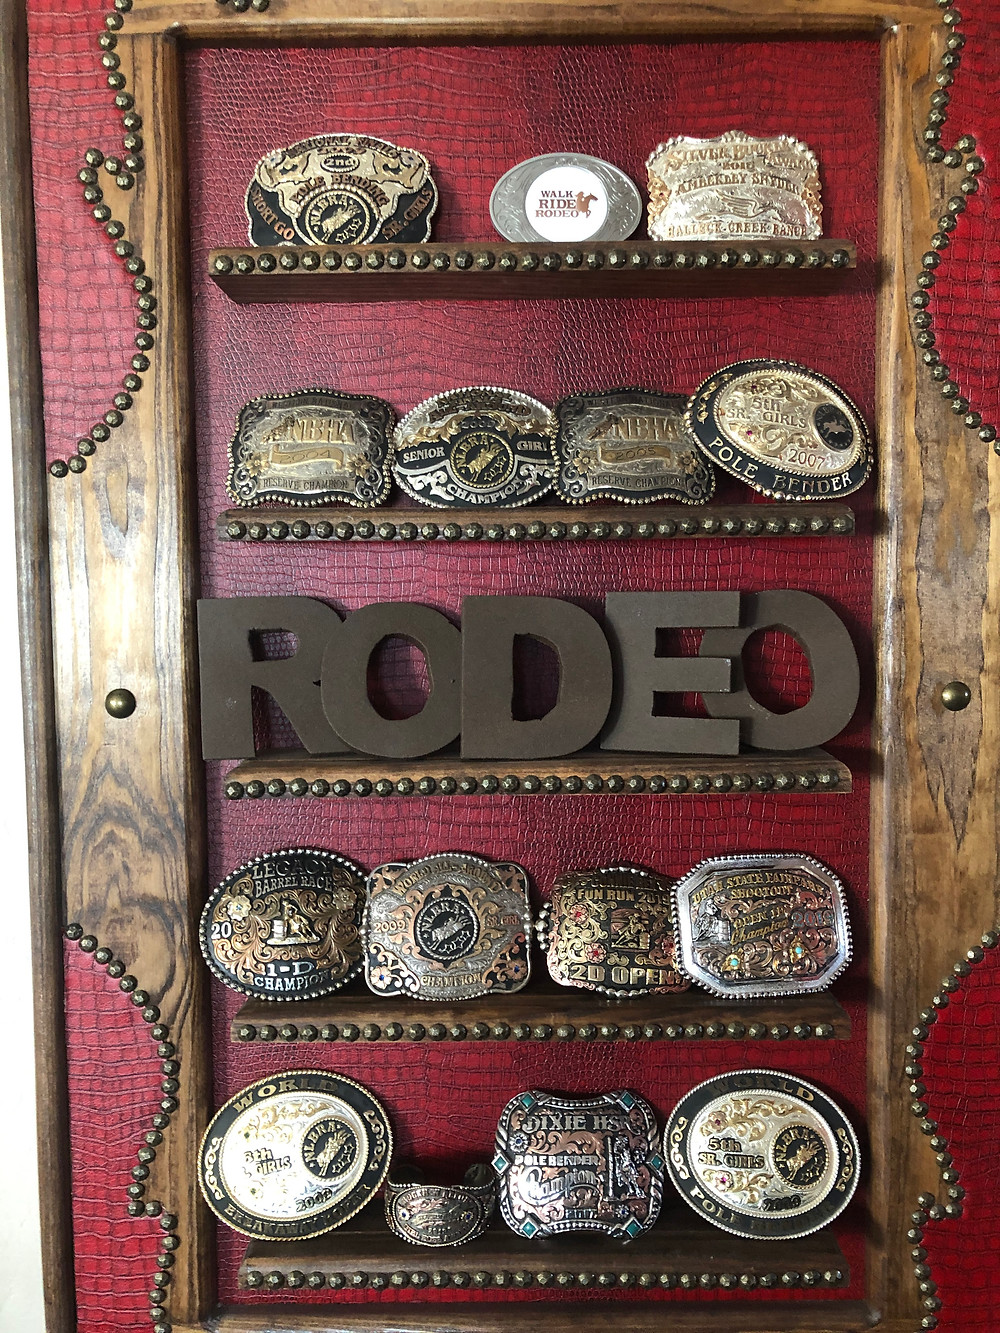 A fraction of her buckles displayed